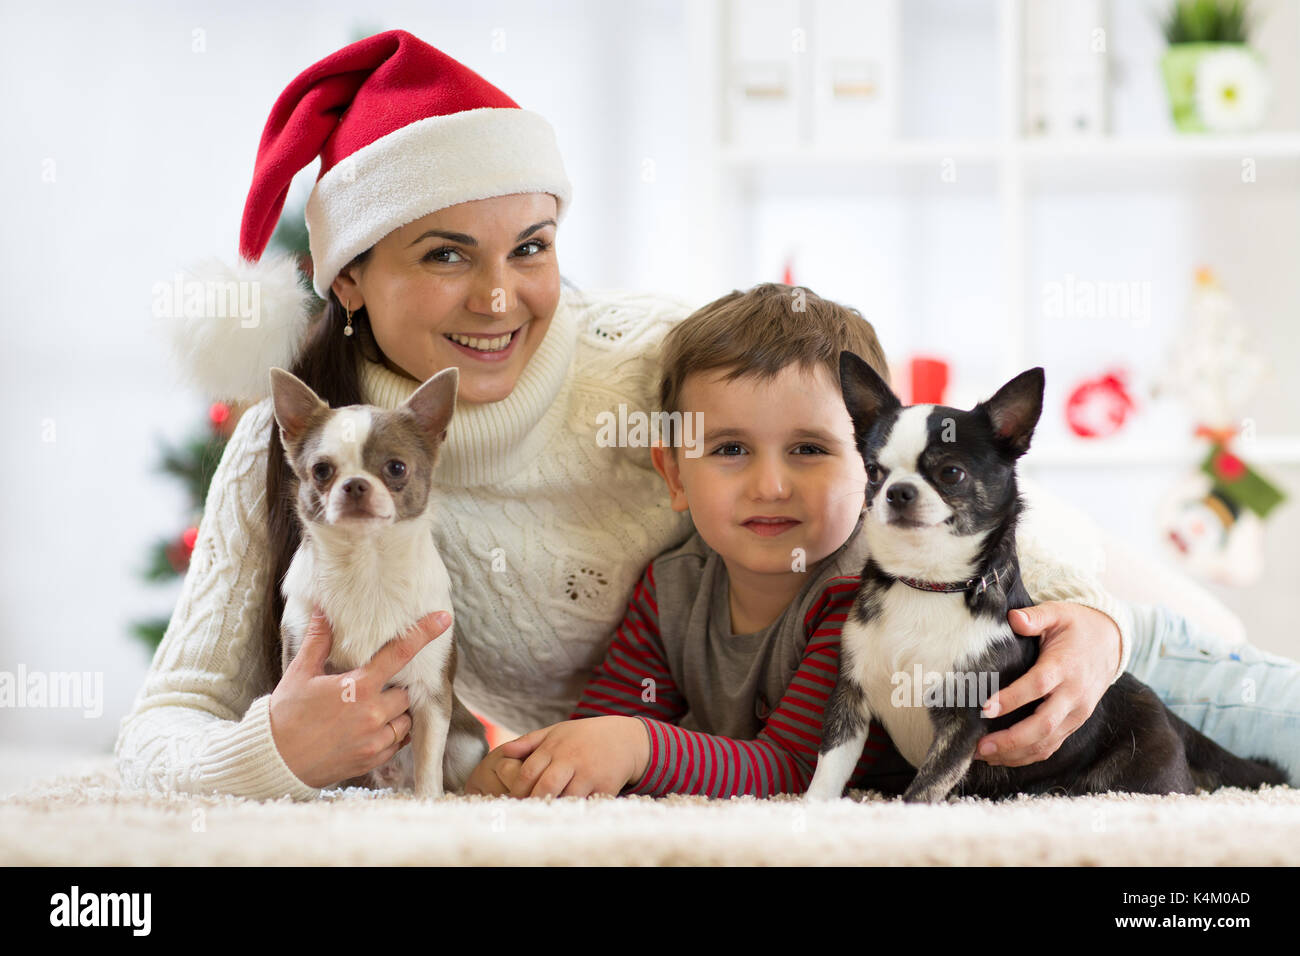 Happy family Christmas. Mother, son and dogs celebrating winter holidays at home. - Stock Image